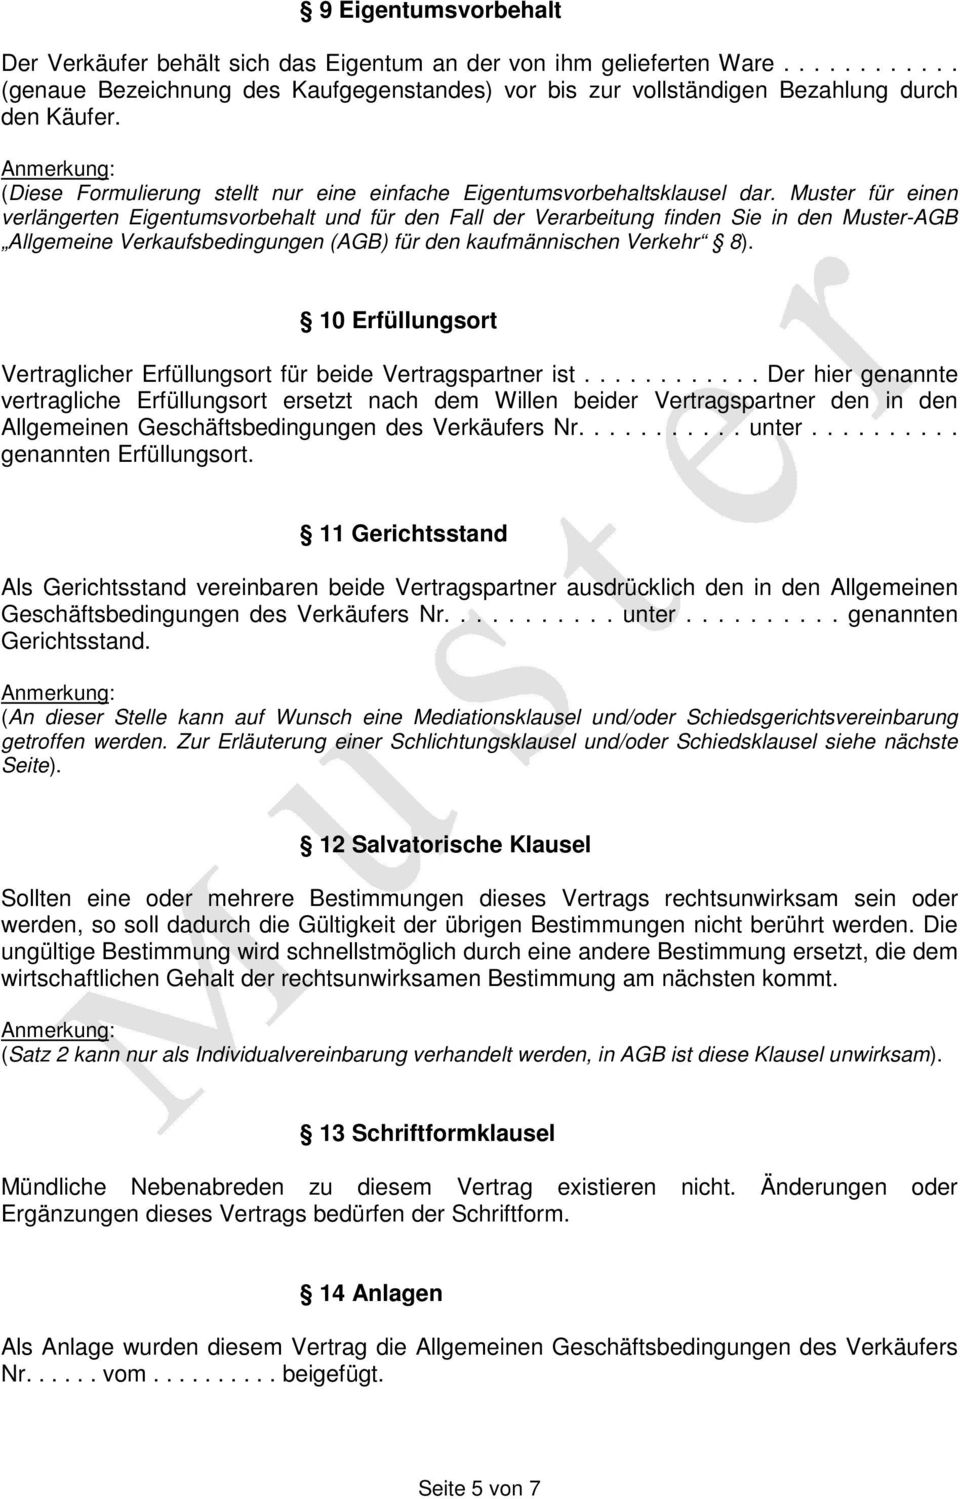 Tolle Lotto Syndikat Vereinbarung Vorlage Fotos - Entry Level Resume ...